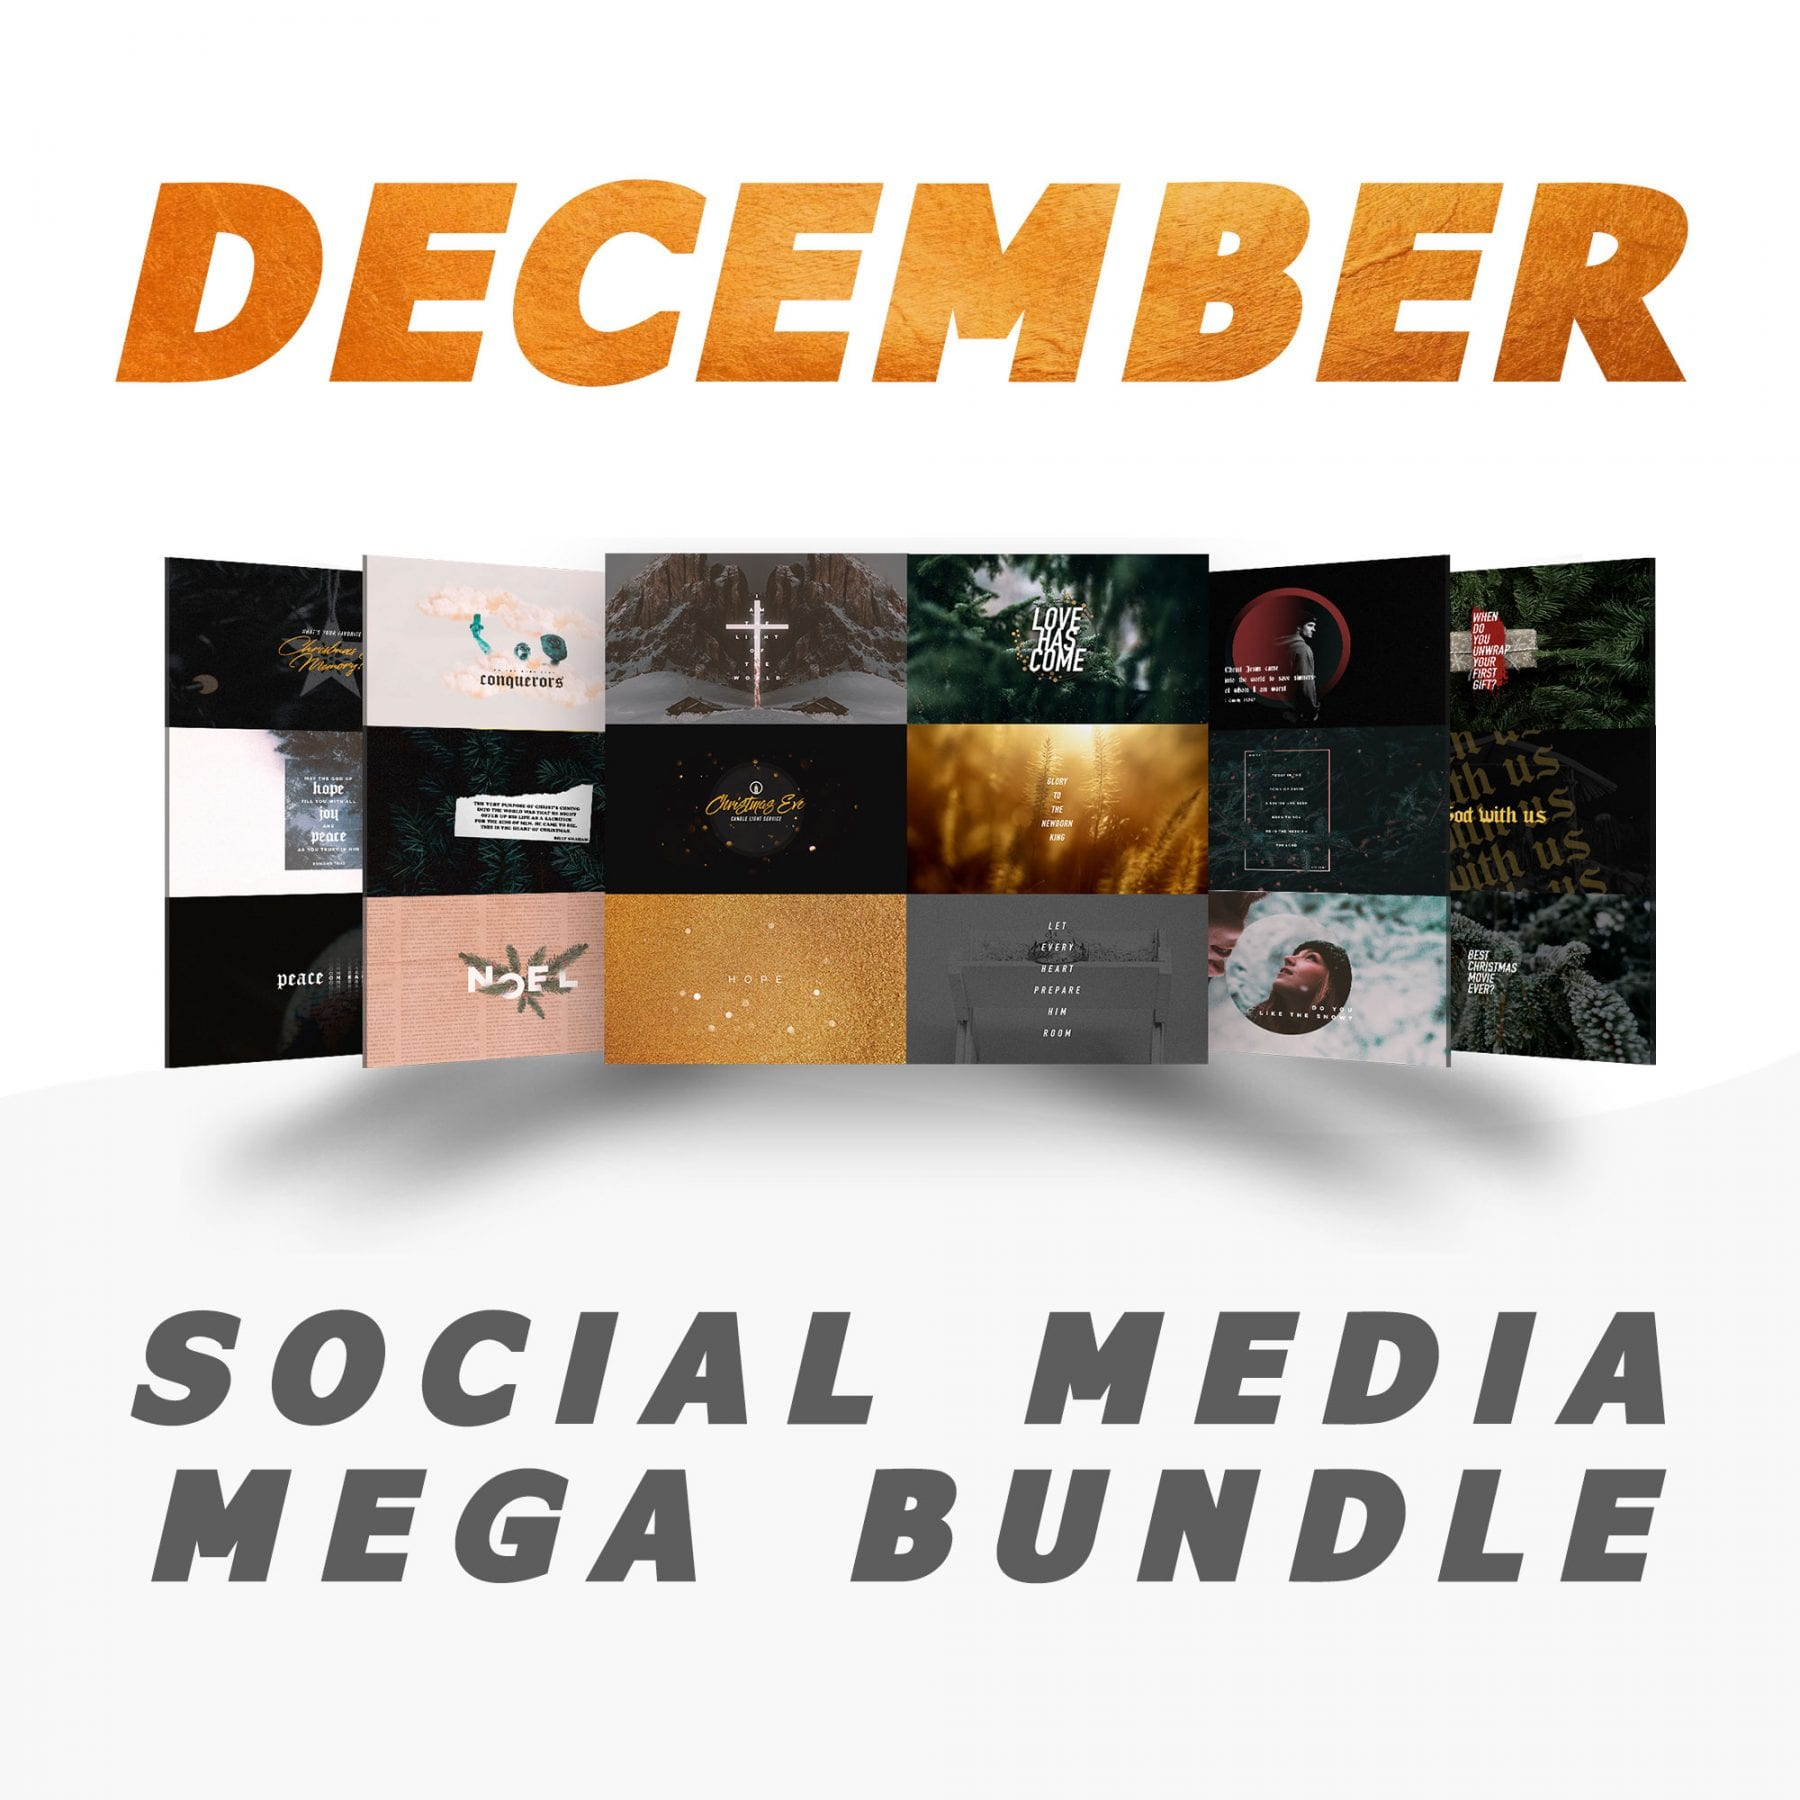 December Mega Bundle